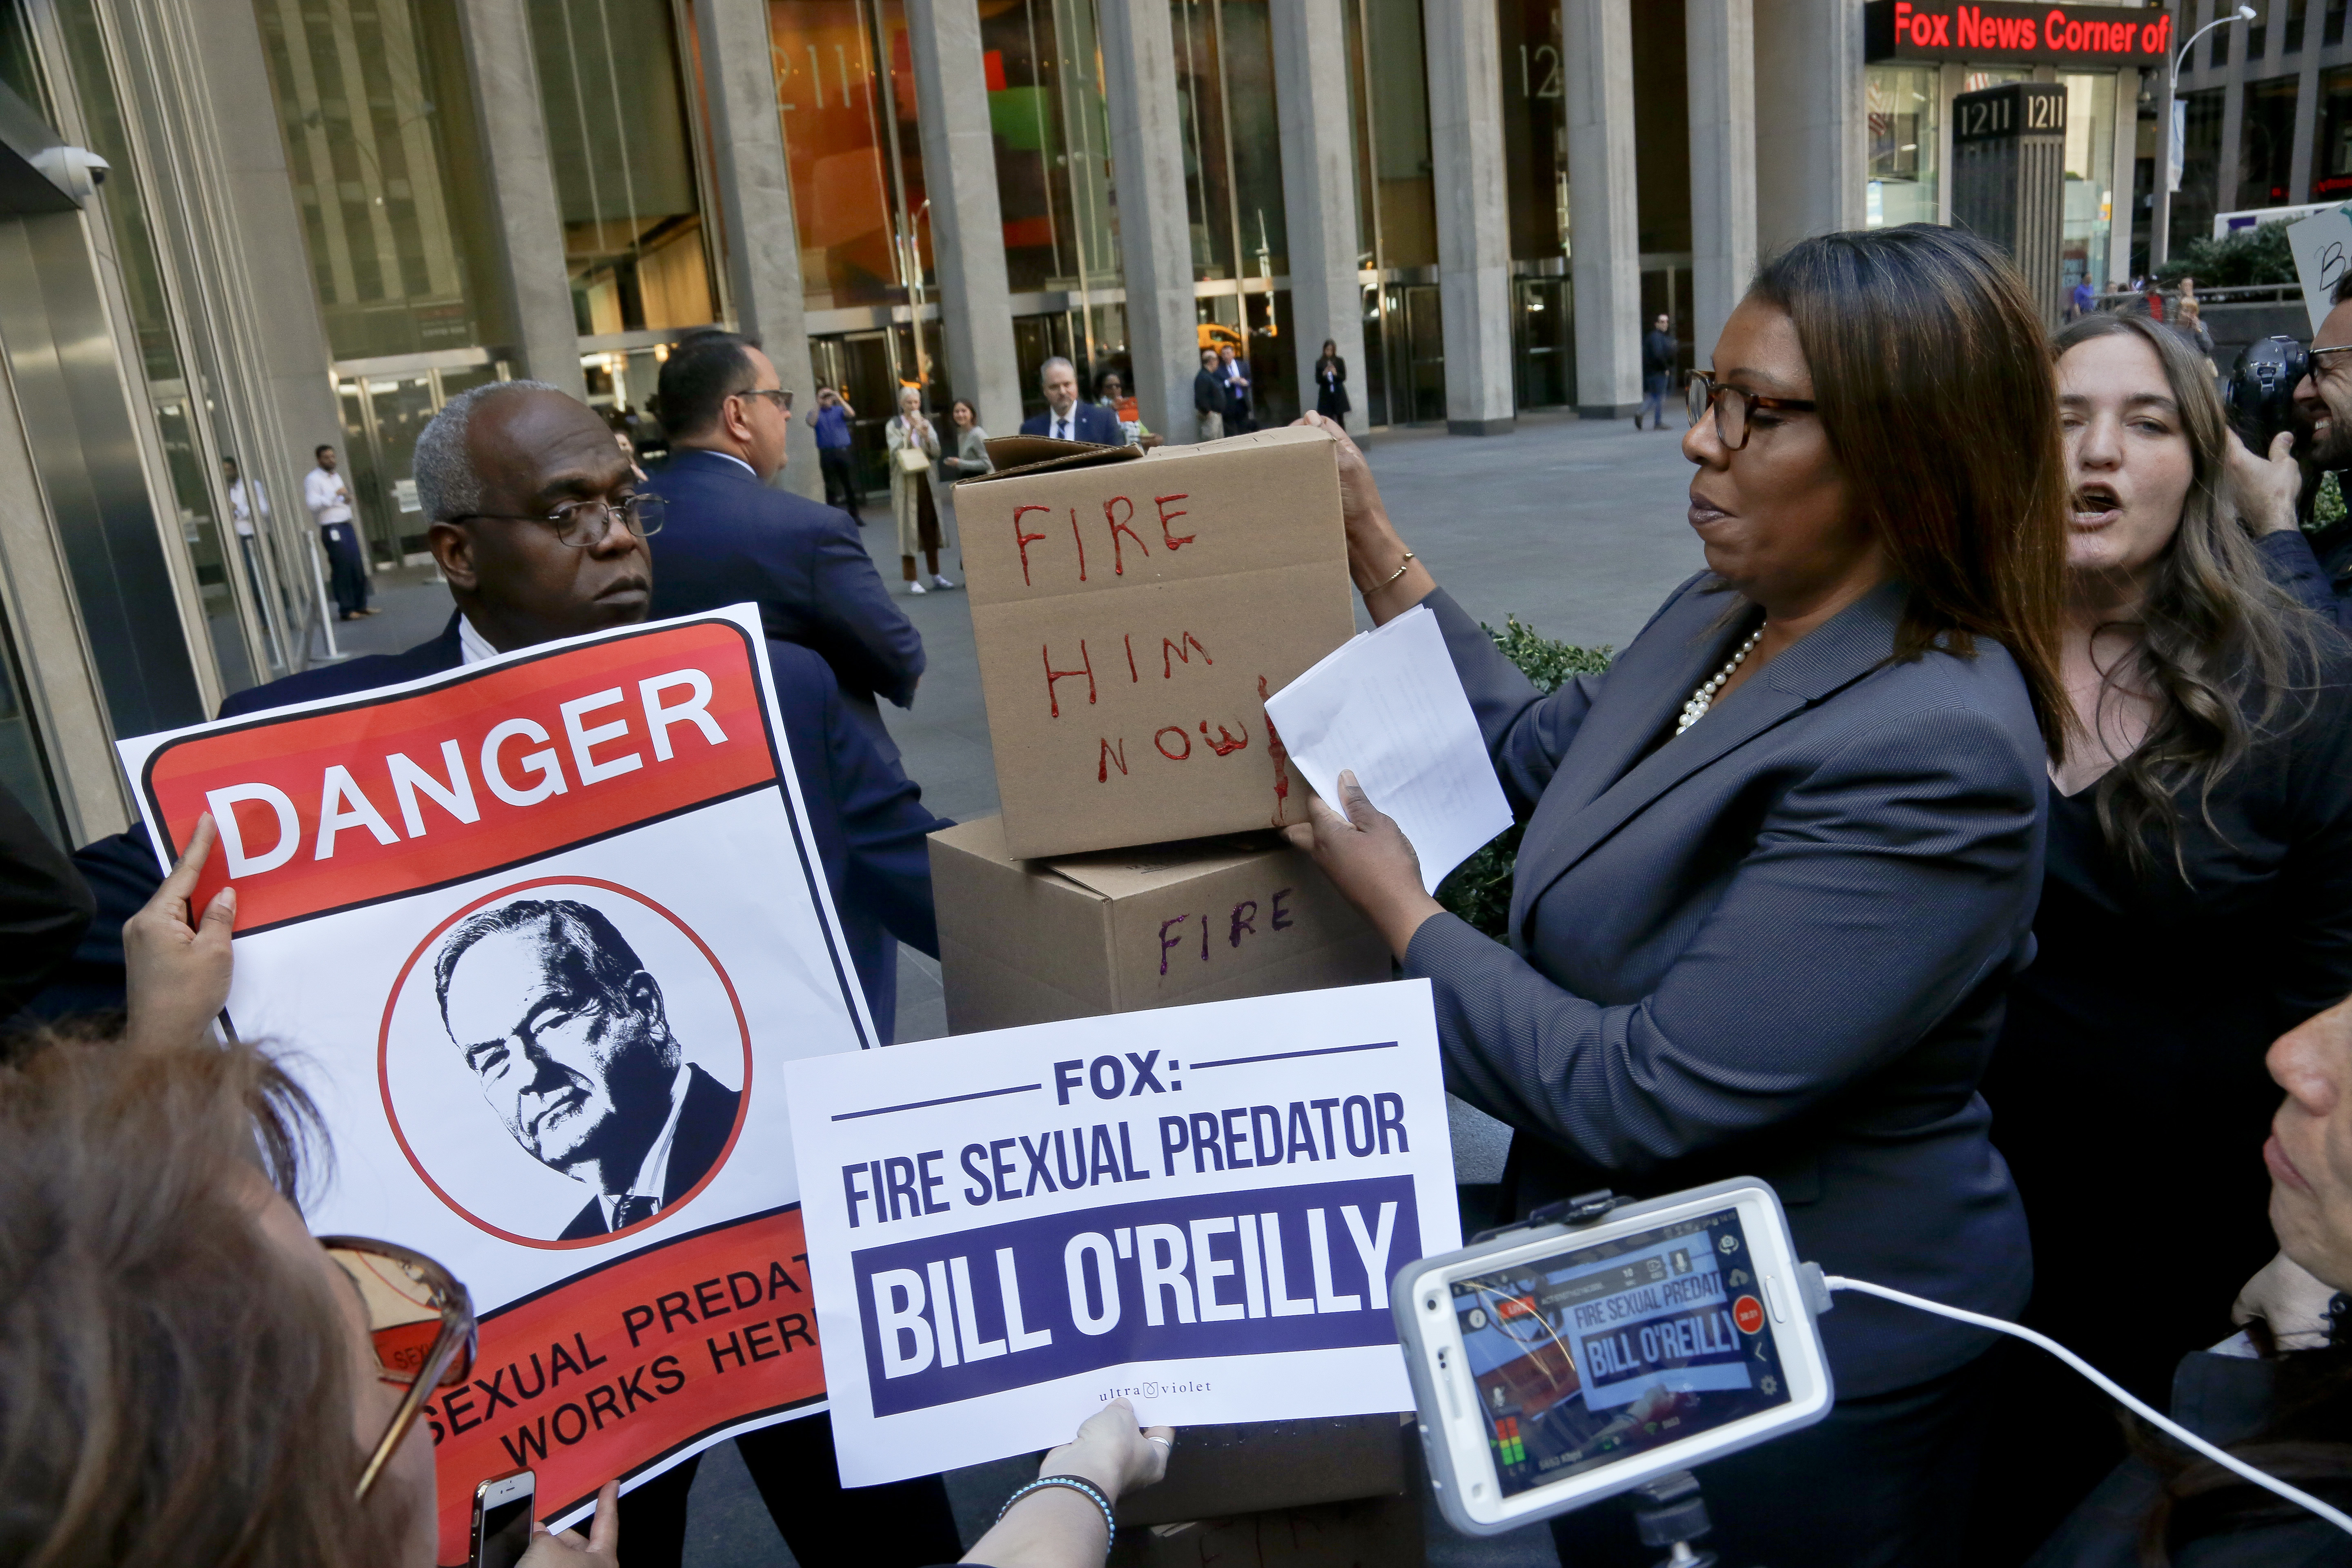 A security guard blocks an entry way as New York Public Advocate Letitia James, second from right, and protesters attempt to deliver boxes of petitions calling for the network to fire Bill O'Reilly, in New York, April 18, 2017.